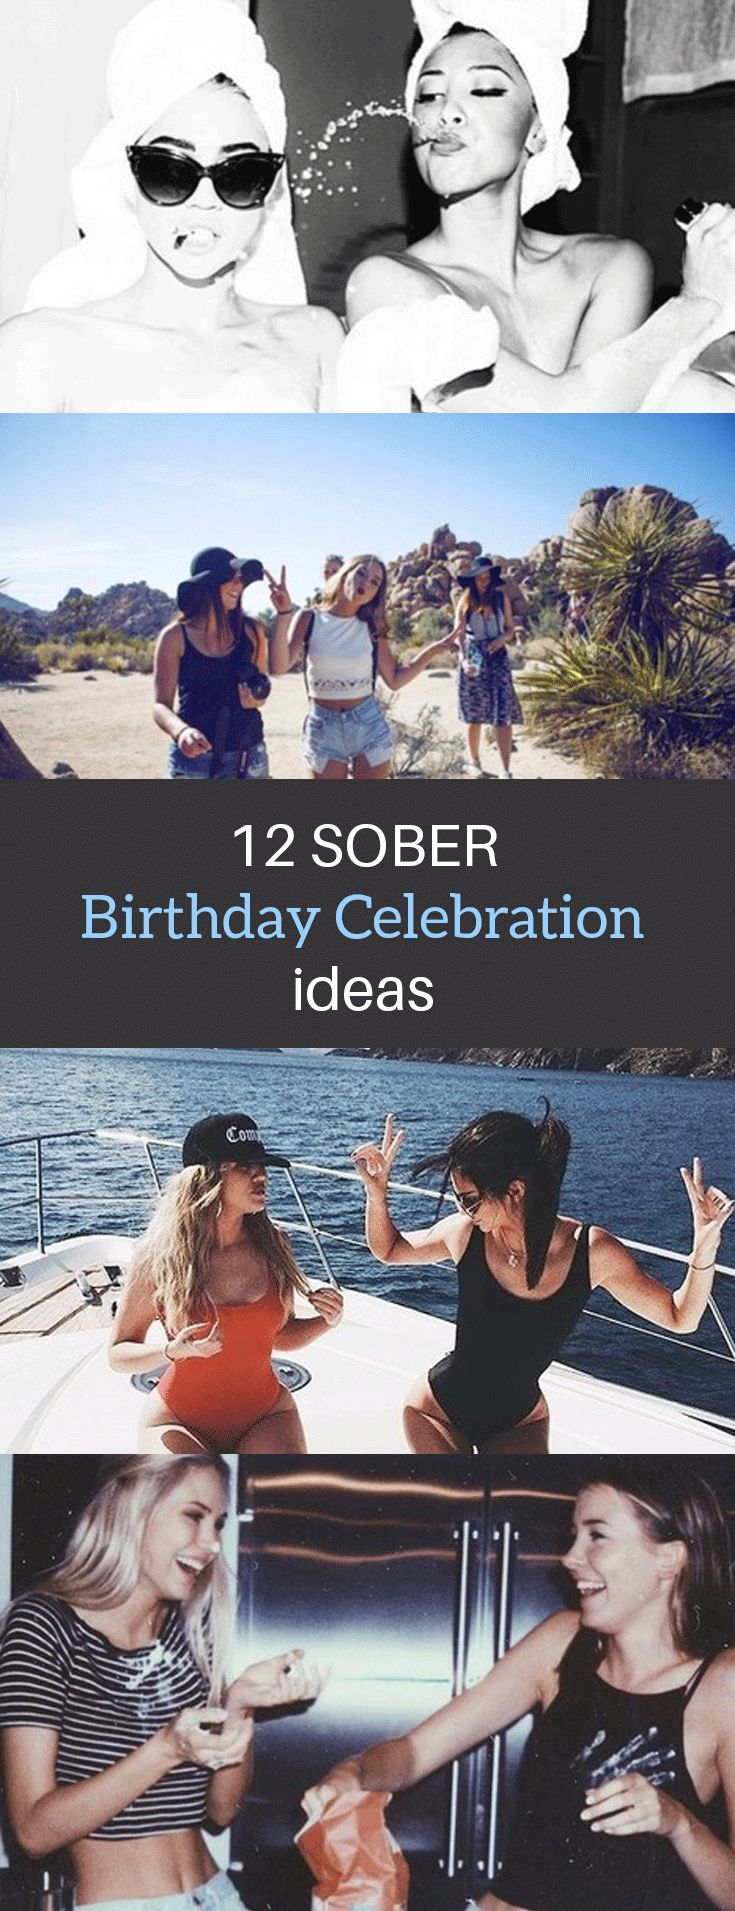 12 Sober Birthday Celebration Ideas